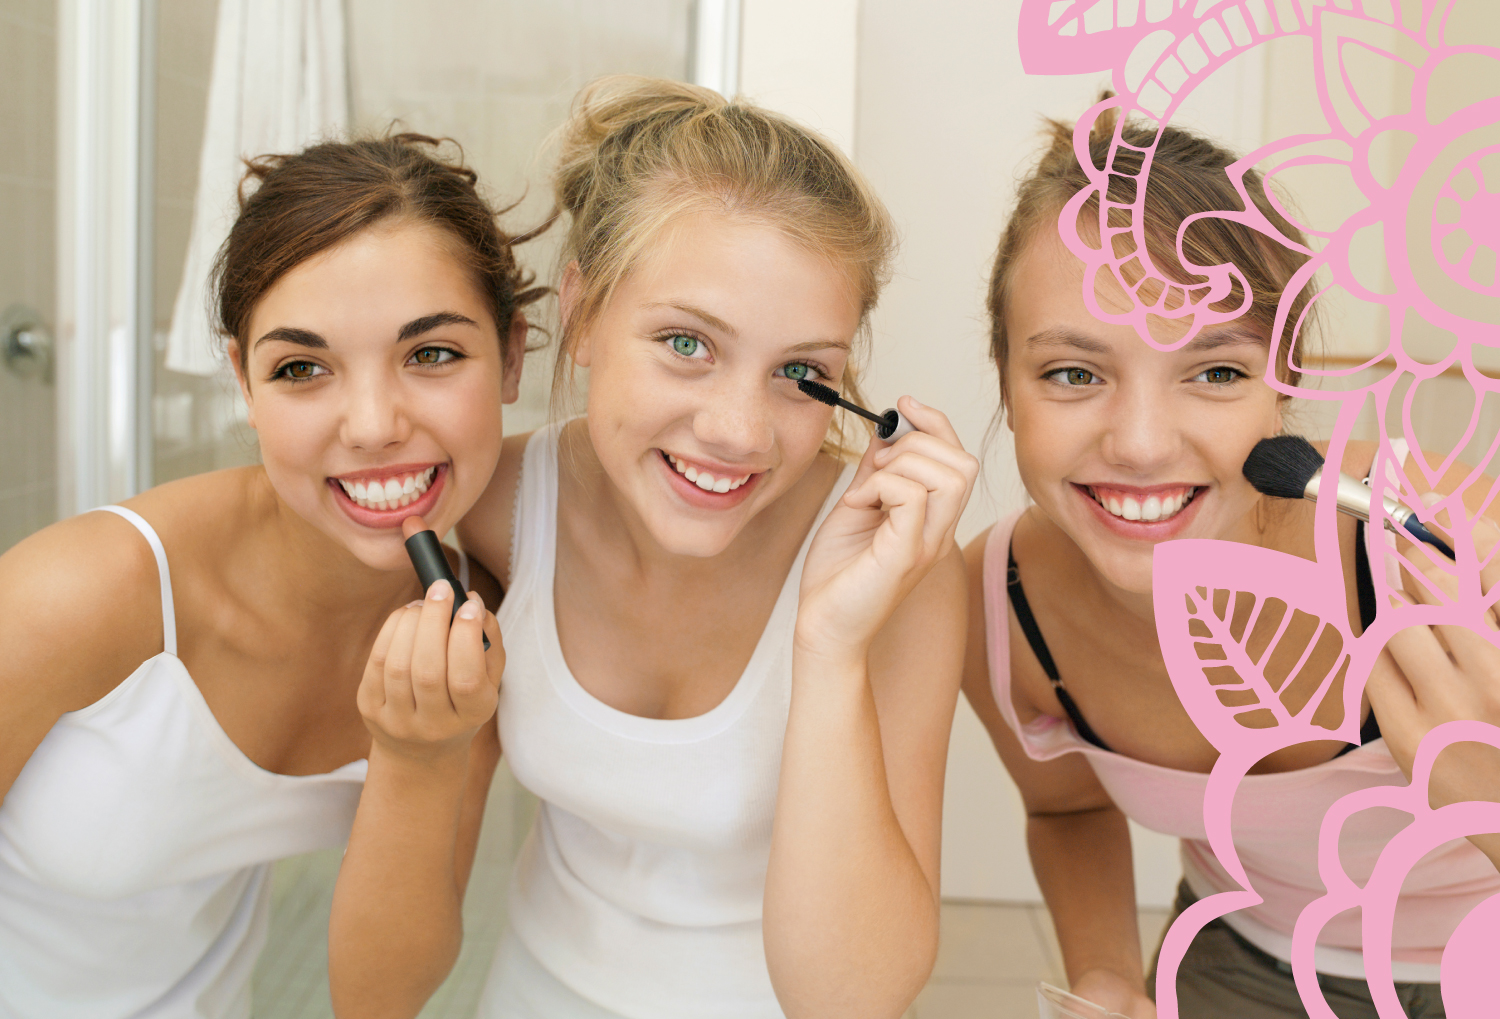 Teens and tween will learn the basics of cosmetics, skin and haircare at our summer camp.